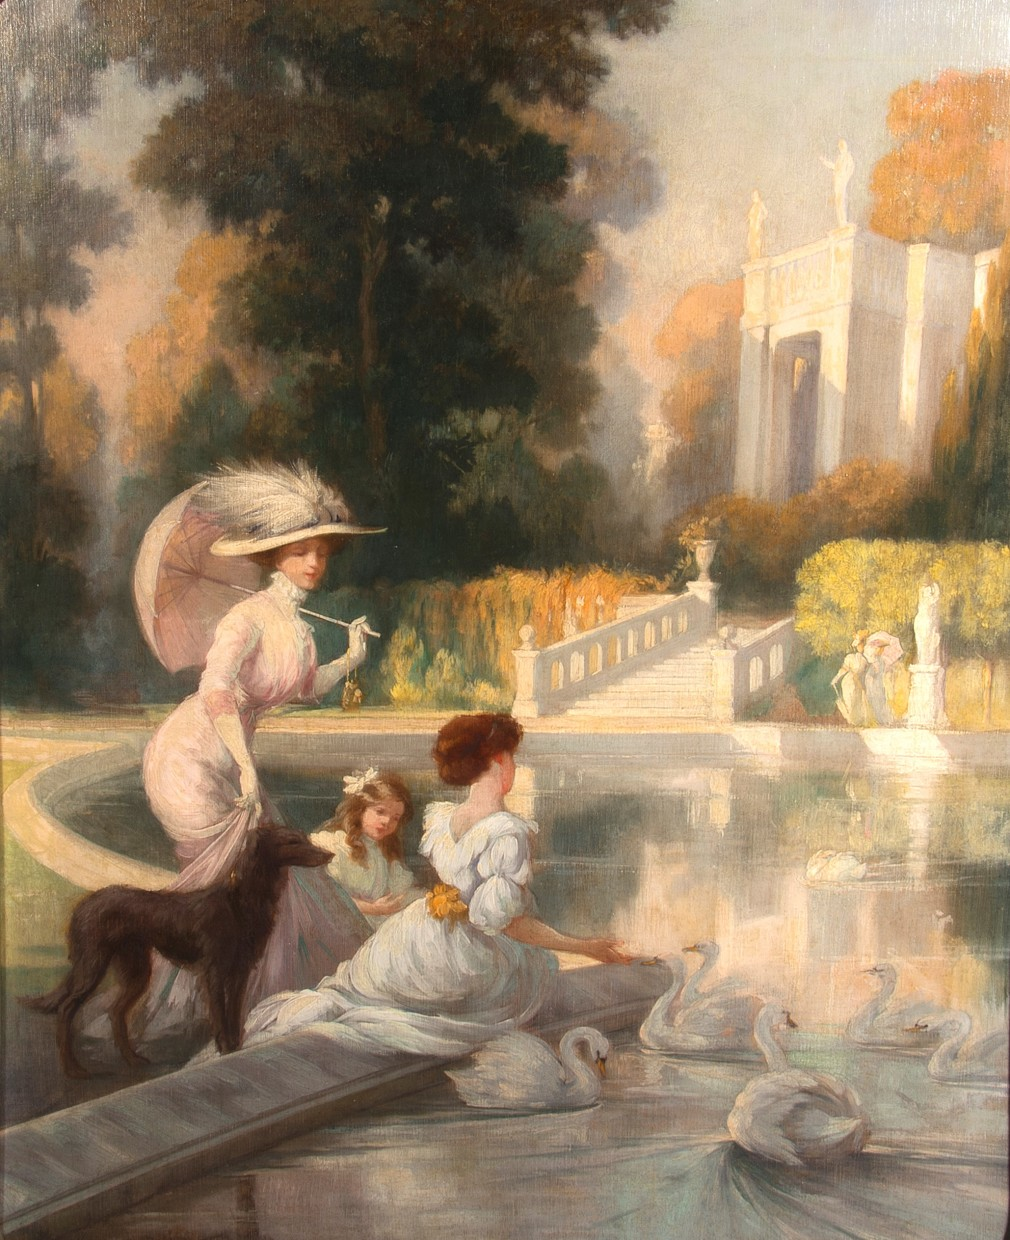 Elegant Figures by Ornamental Pond